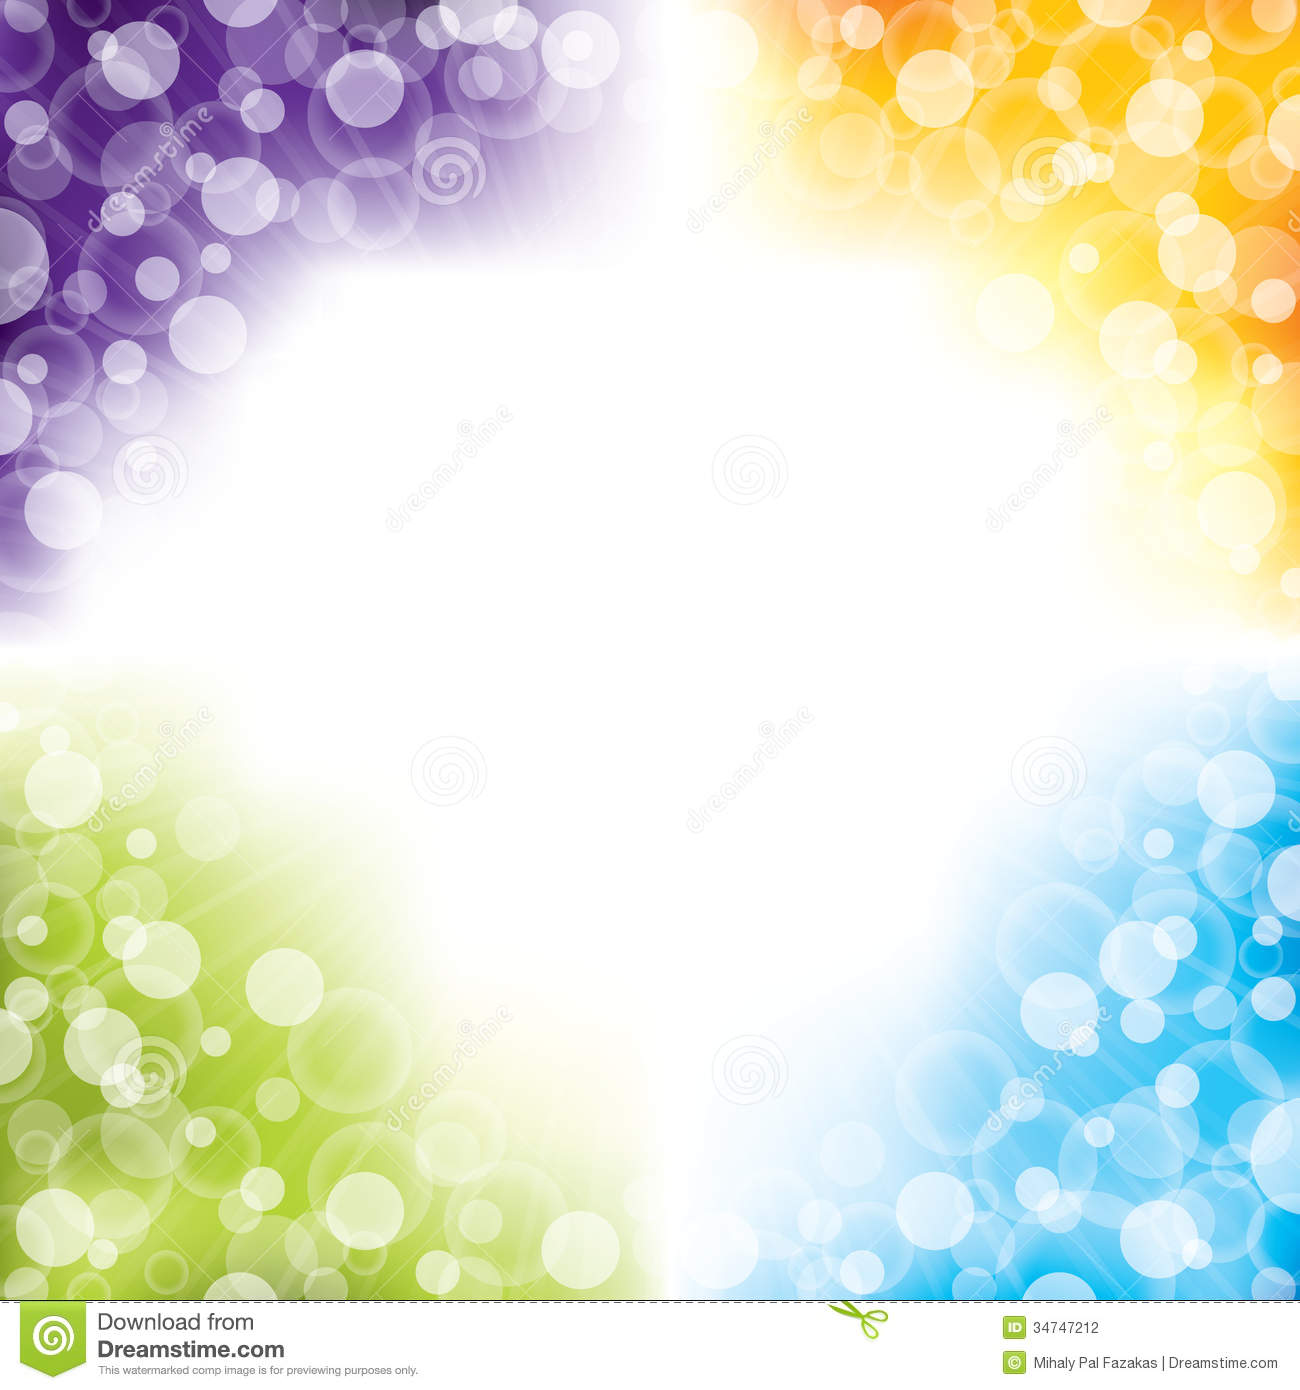 abstract colorful design light - photo #20